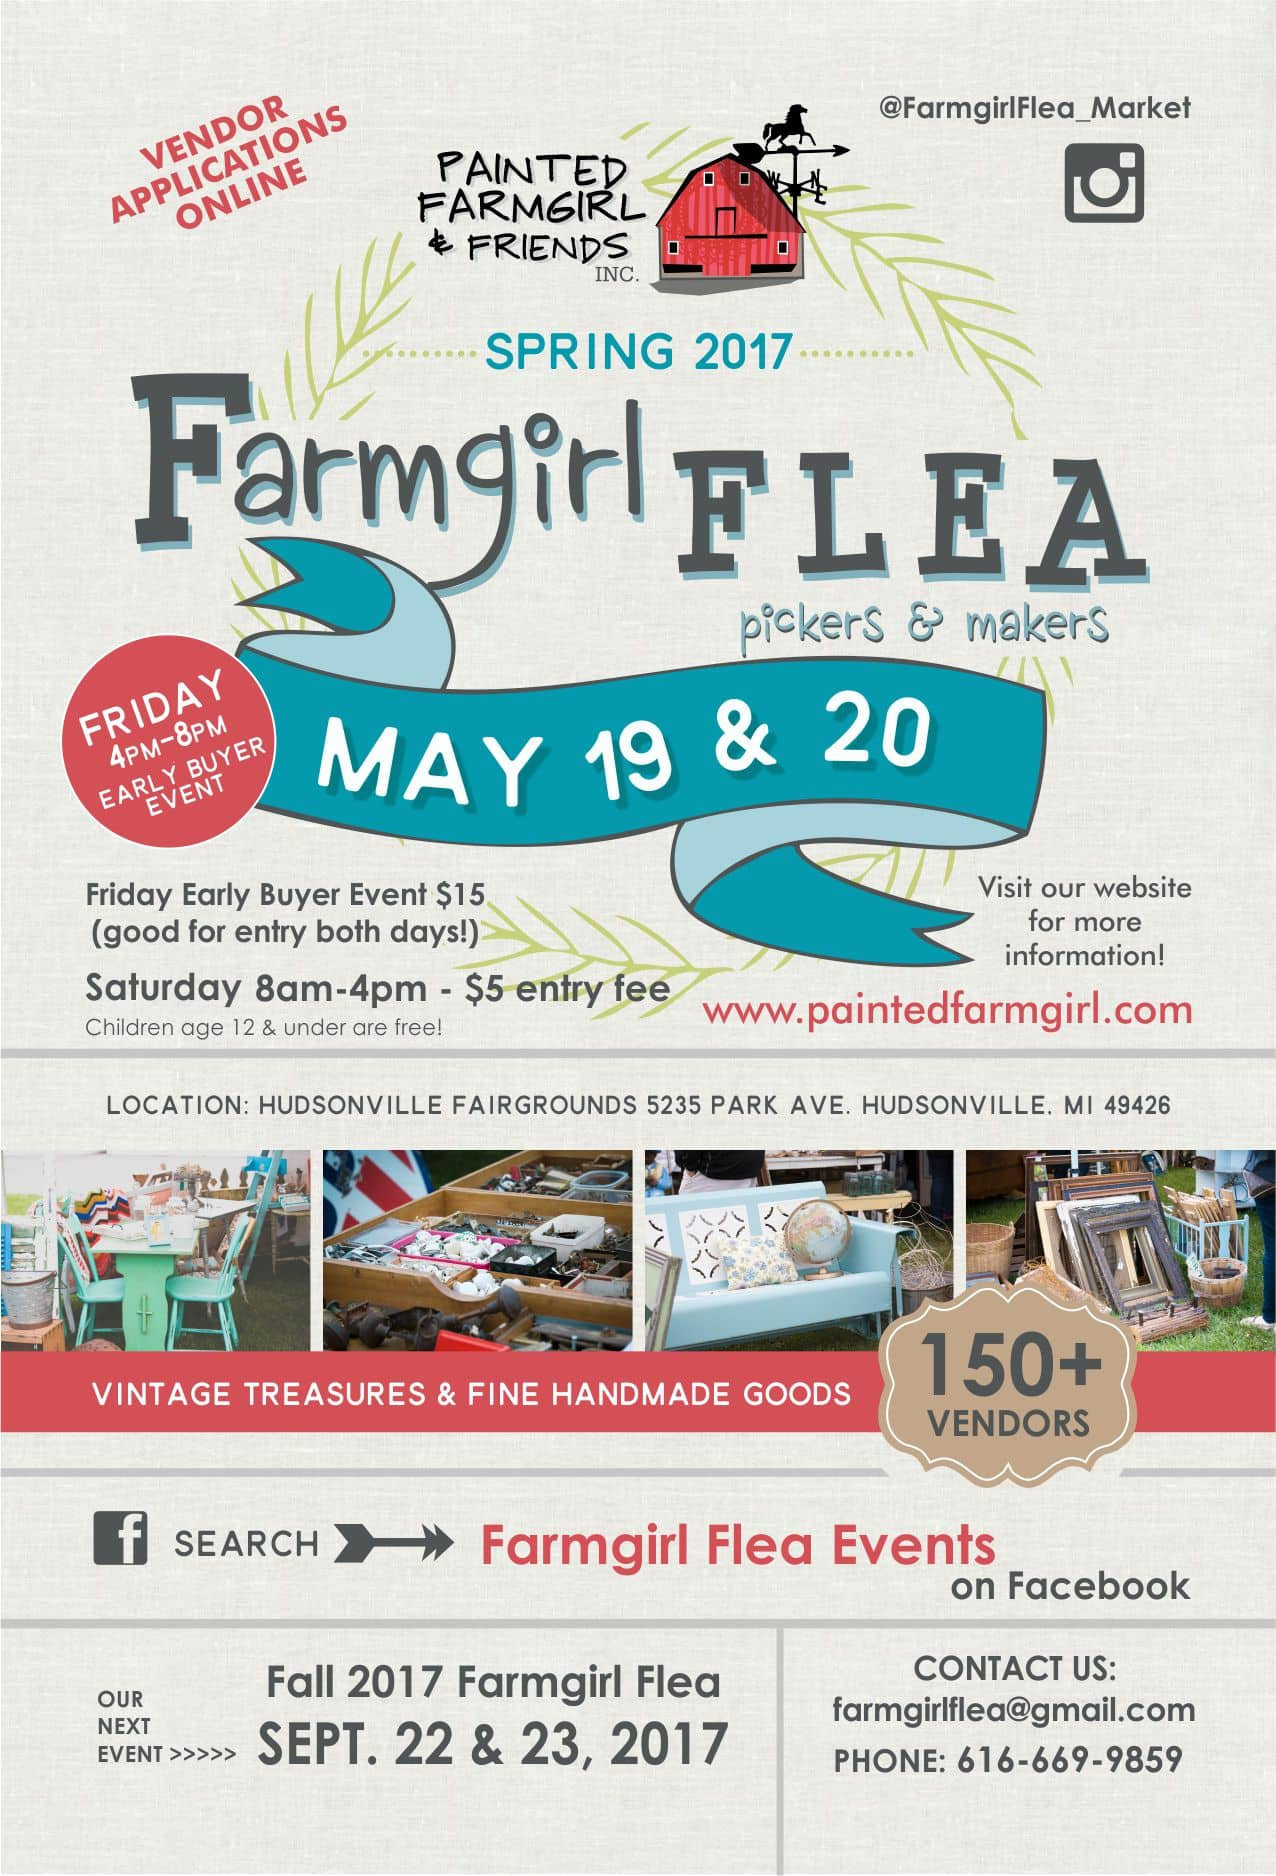 custom designed flea market flyer